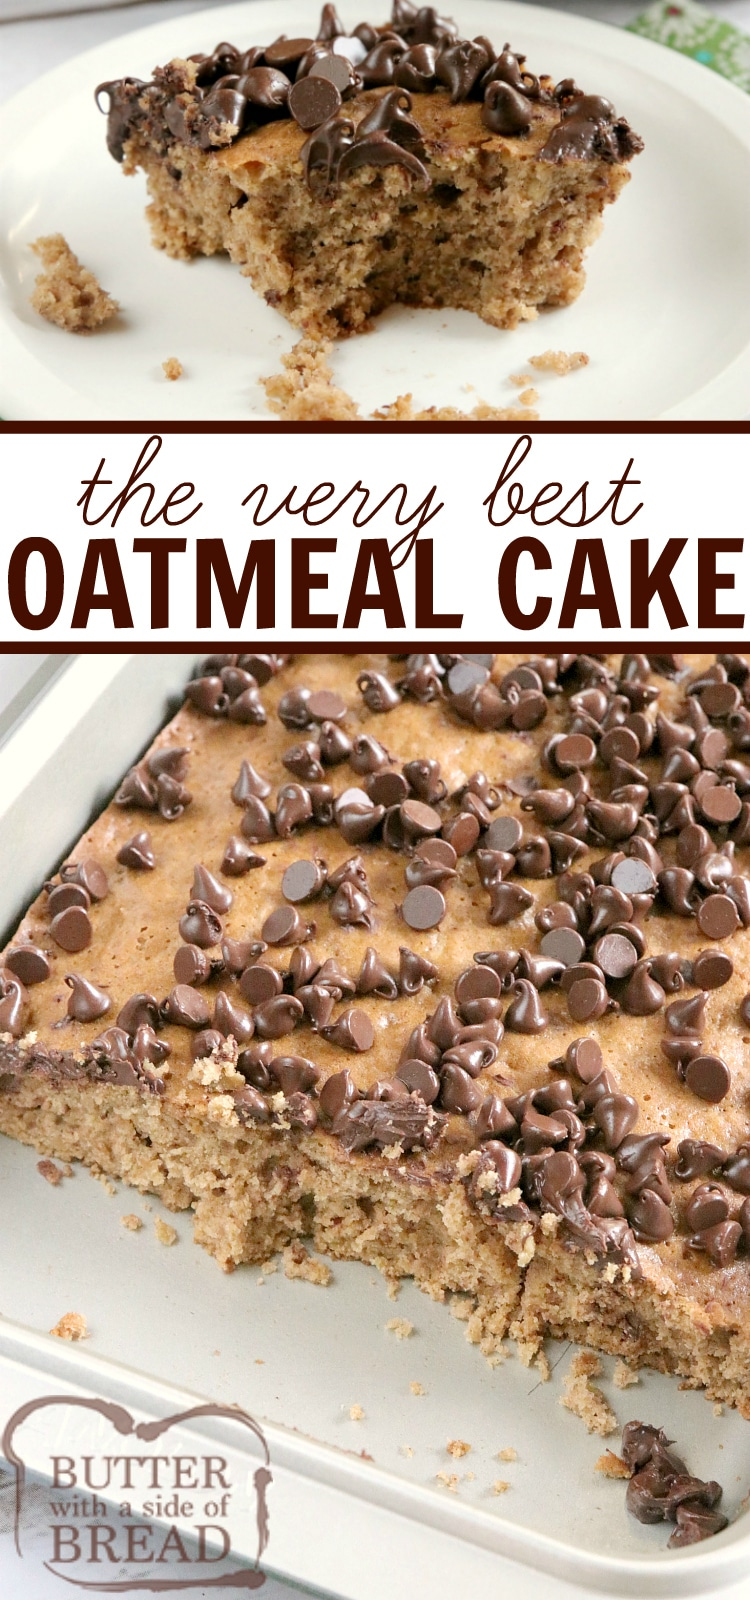 Oatmeal Cake recipe that is moist, full of oats and easily topped with chocolate chips. This easy cake recipe is made with simple ingredients that yield such a delicious cake, you don't even need frosting!